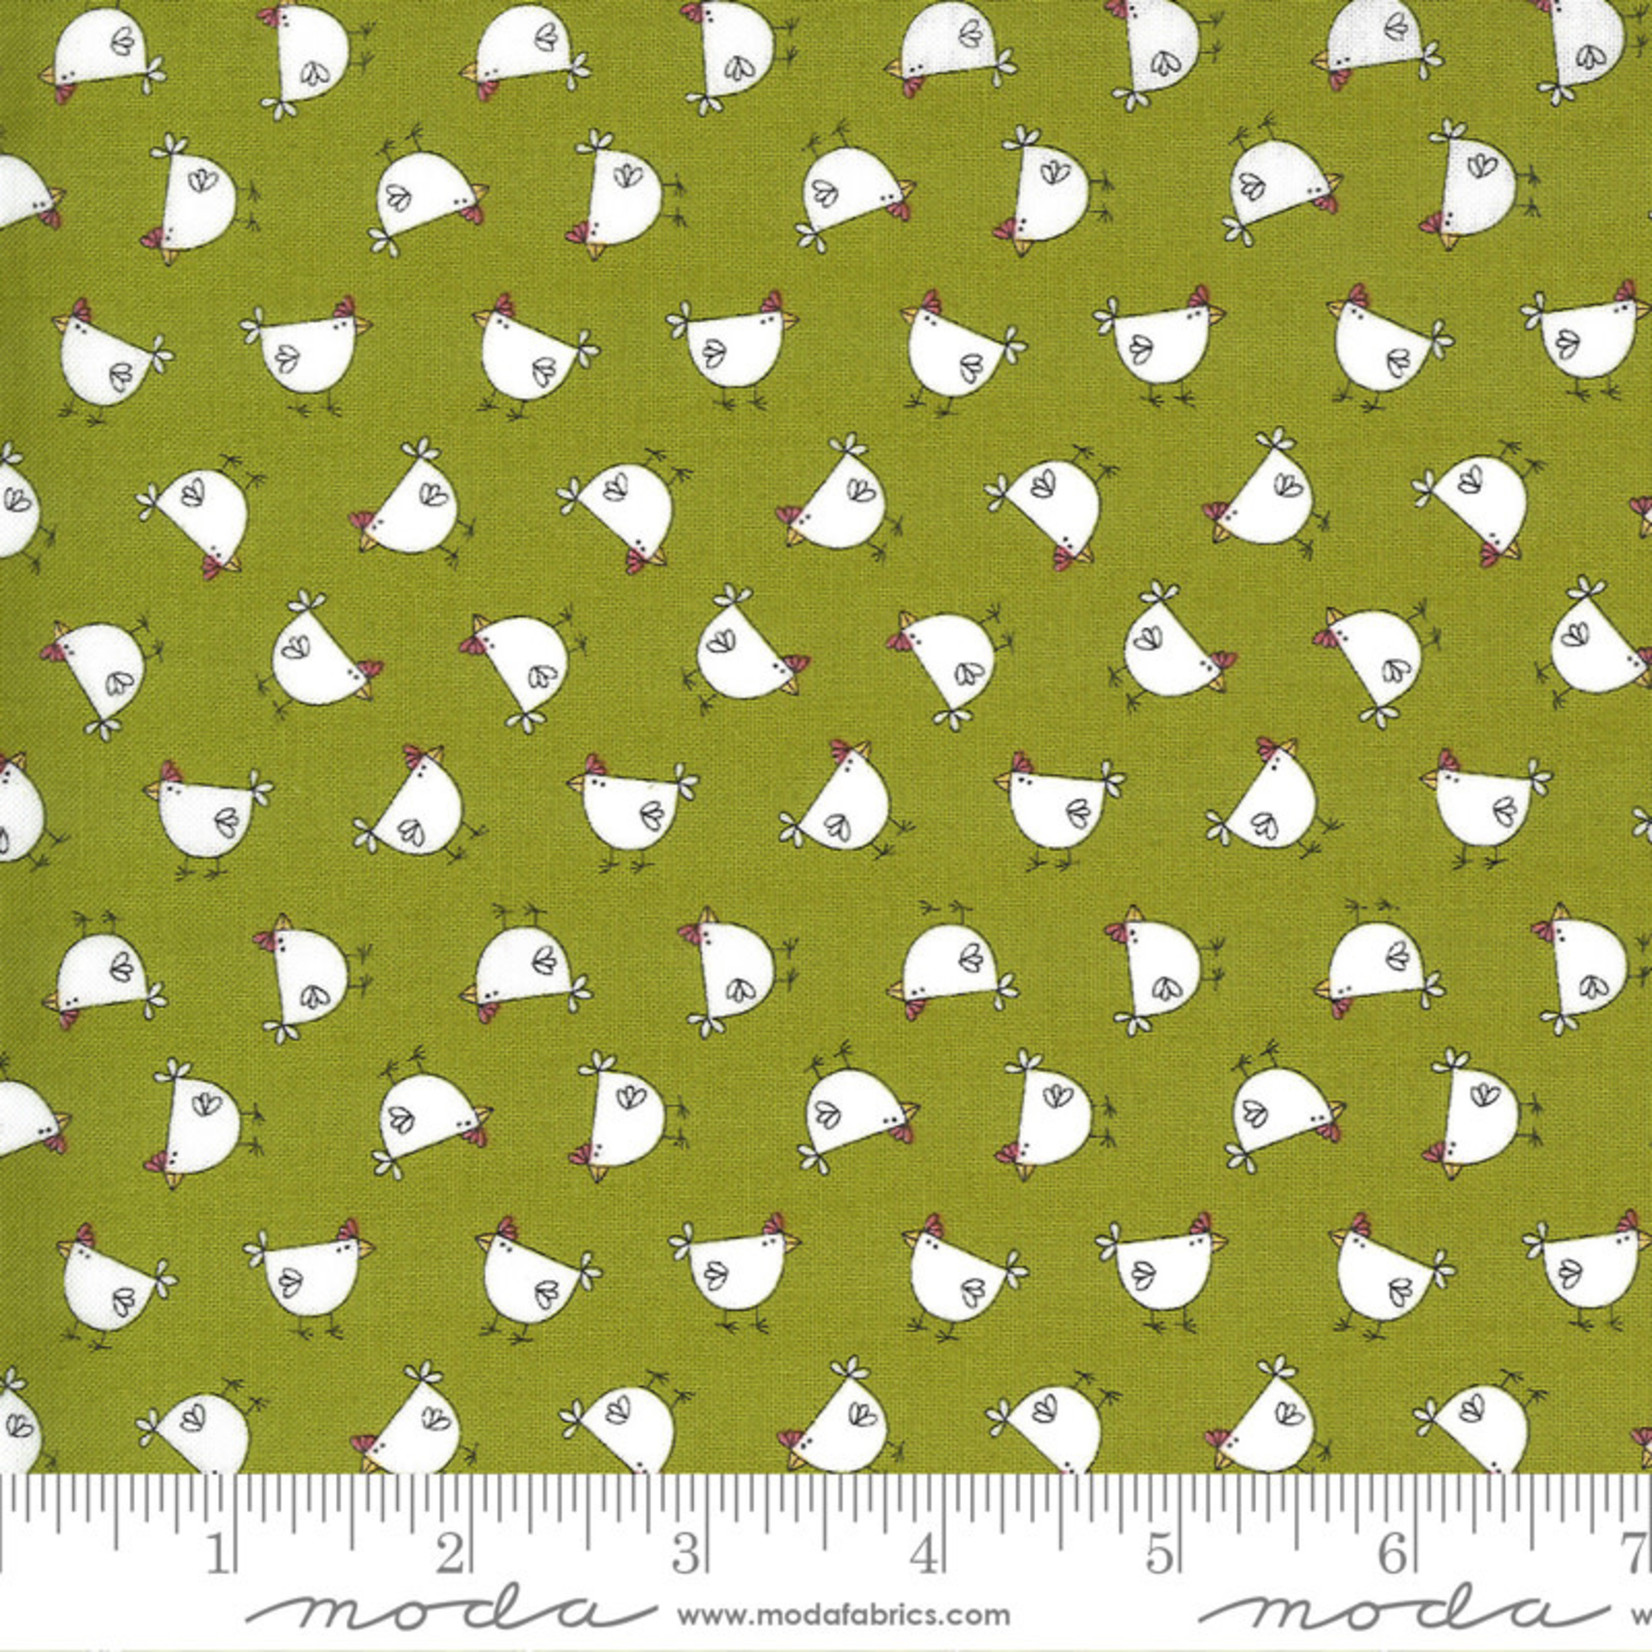 Sweetwater Spring Chicken, Cluck, Green 55521-13 $0.20 per cm or $20/m